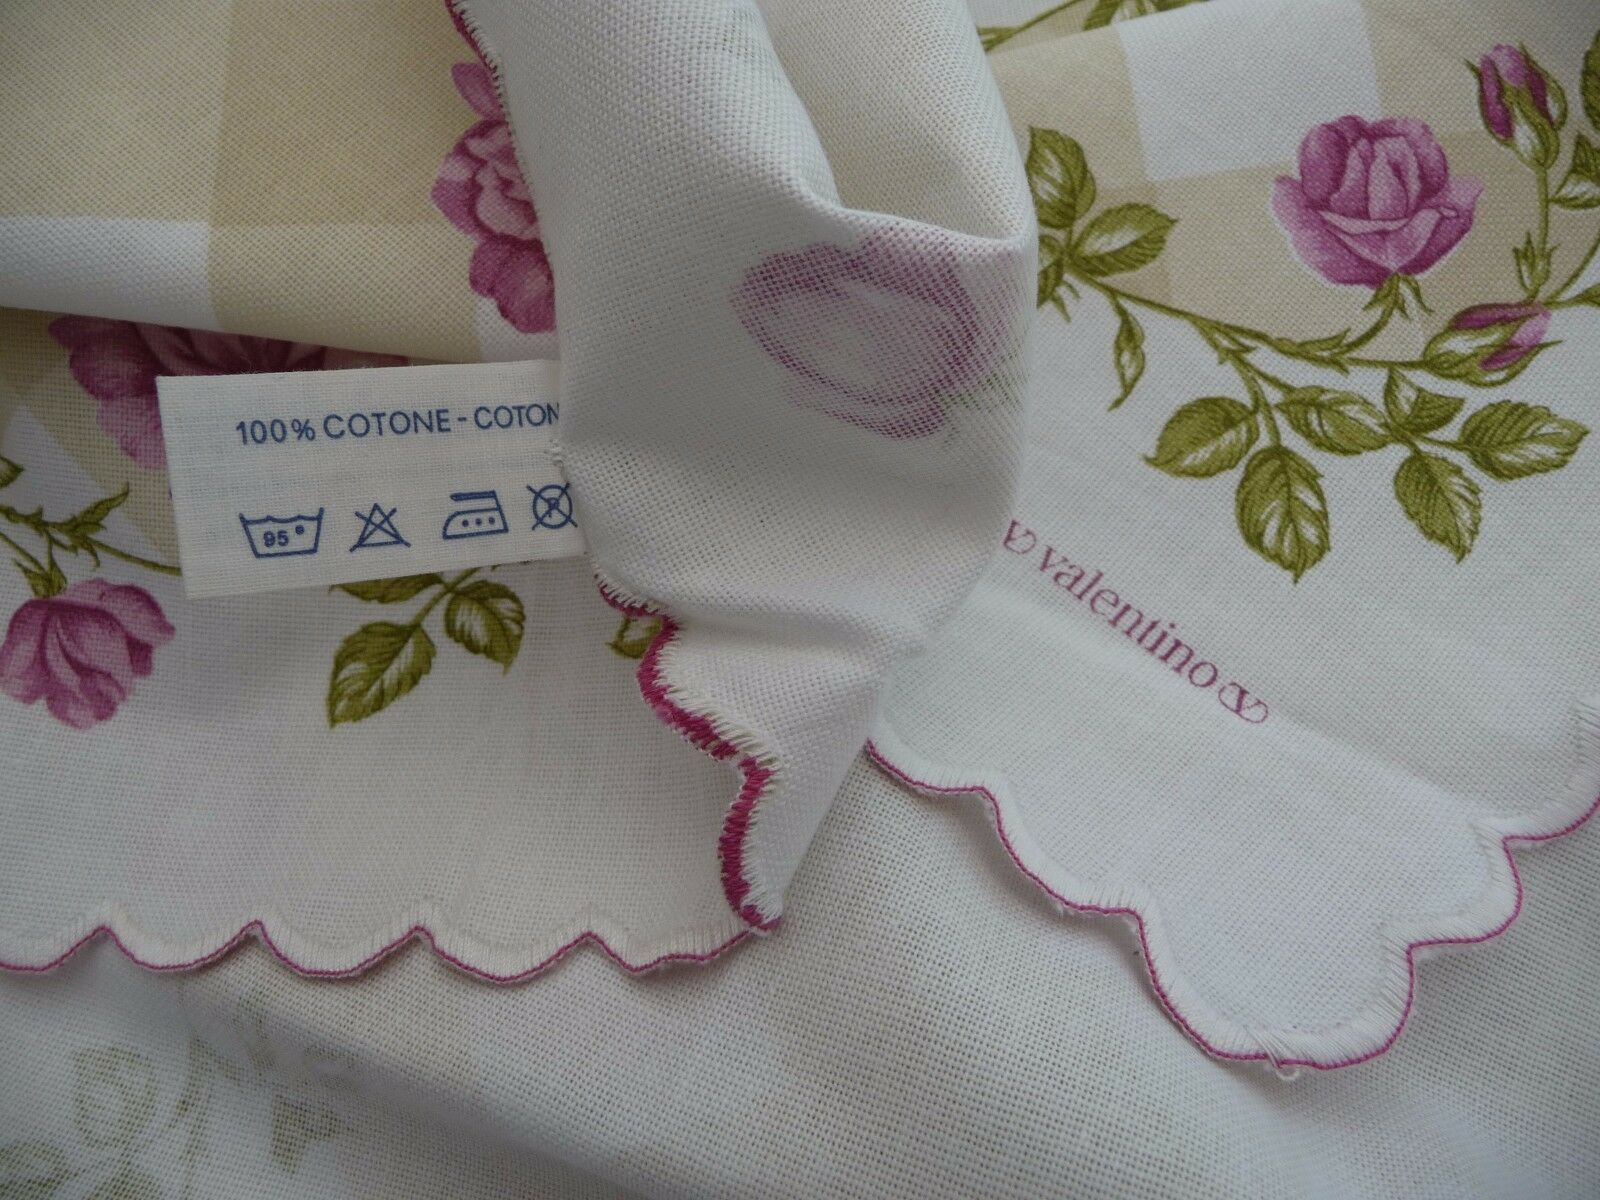 Valentino nappe 8 serviettes NOUVEAU Cantoni roses treillis MADE IN ITALY Signé